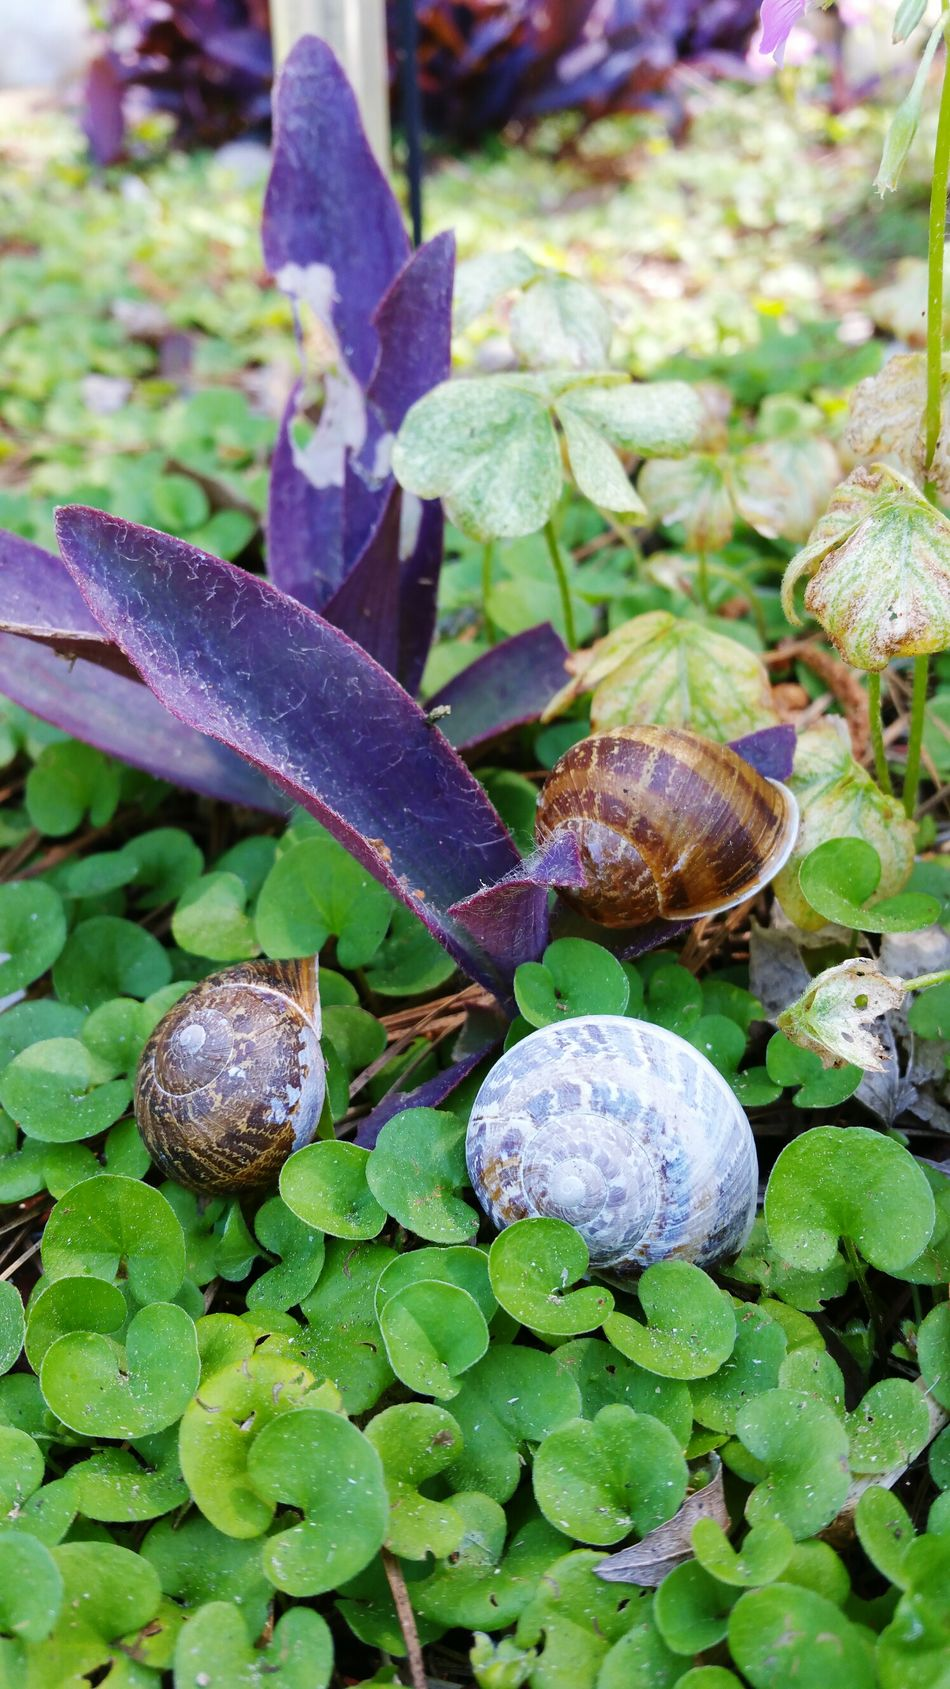 Shots from Thursday Leaf Nature Growth No People Close-up Plant Outdoors Animal Themes Day Freshness Beauty In Nature Gastropod Popular Photos In My Neighborhood Photography EyeEm Best Shots Growth Beauty In Nature EyeEm Nature Lover Snail Shells My Photography